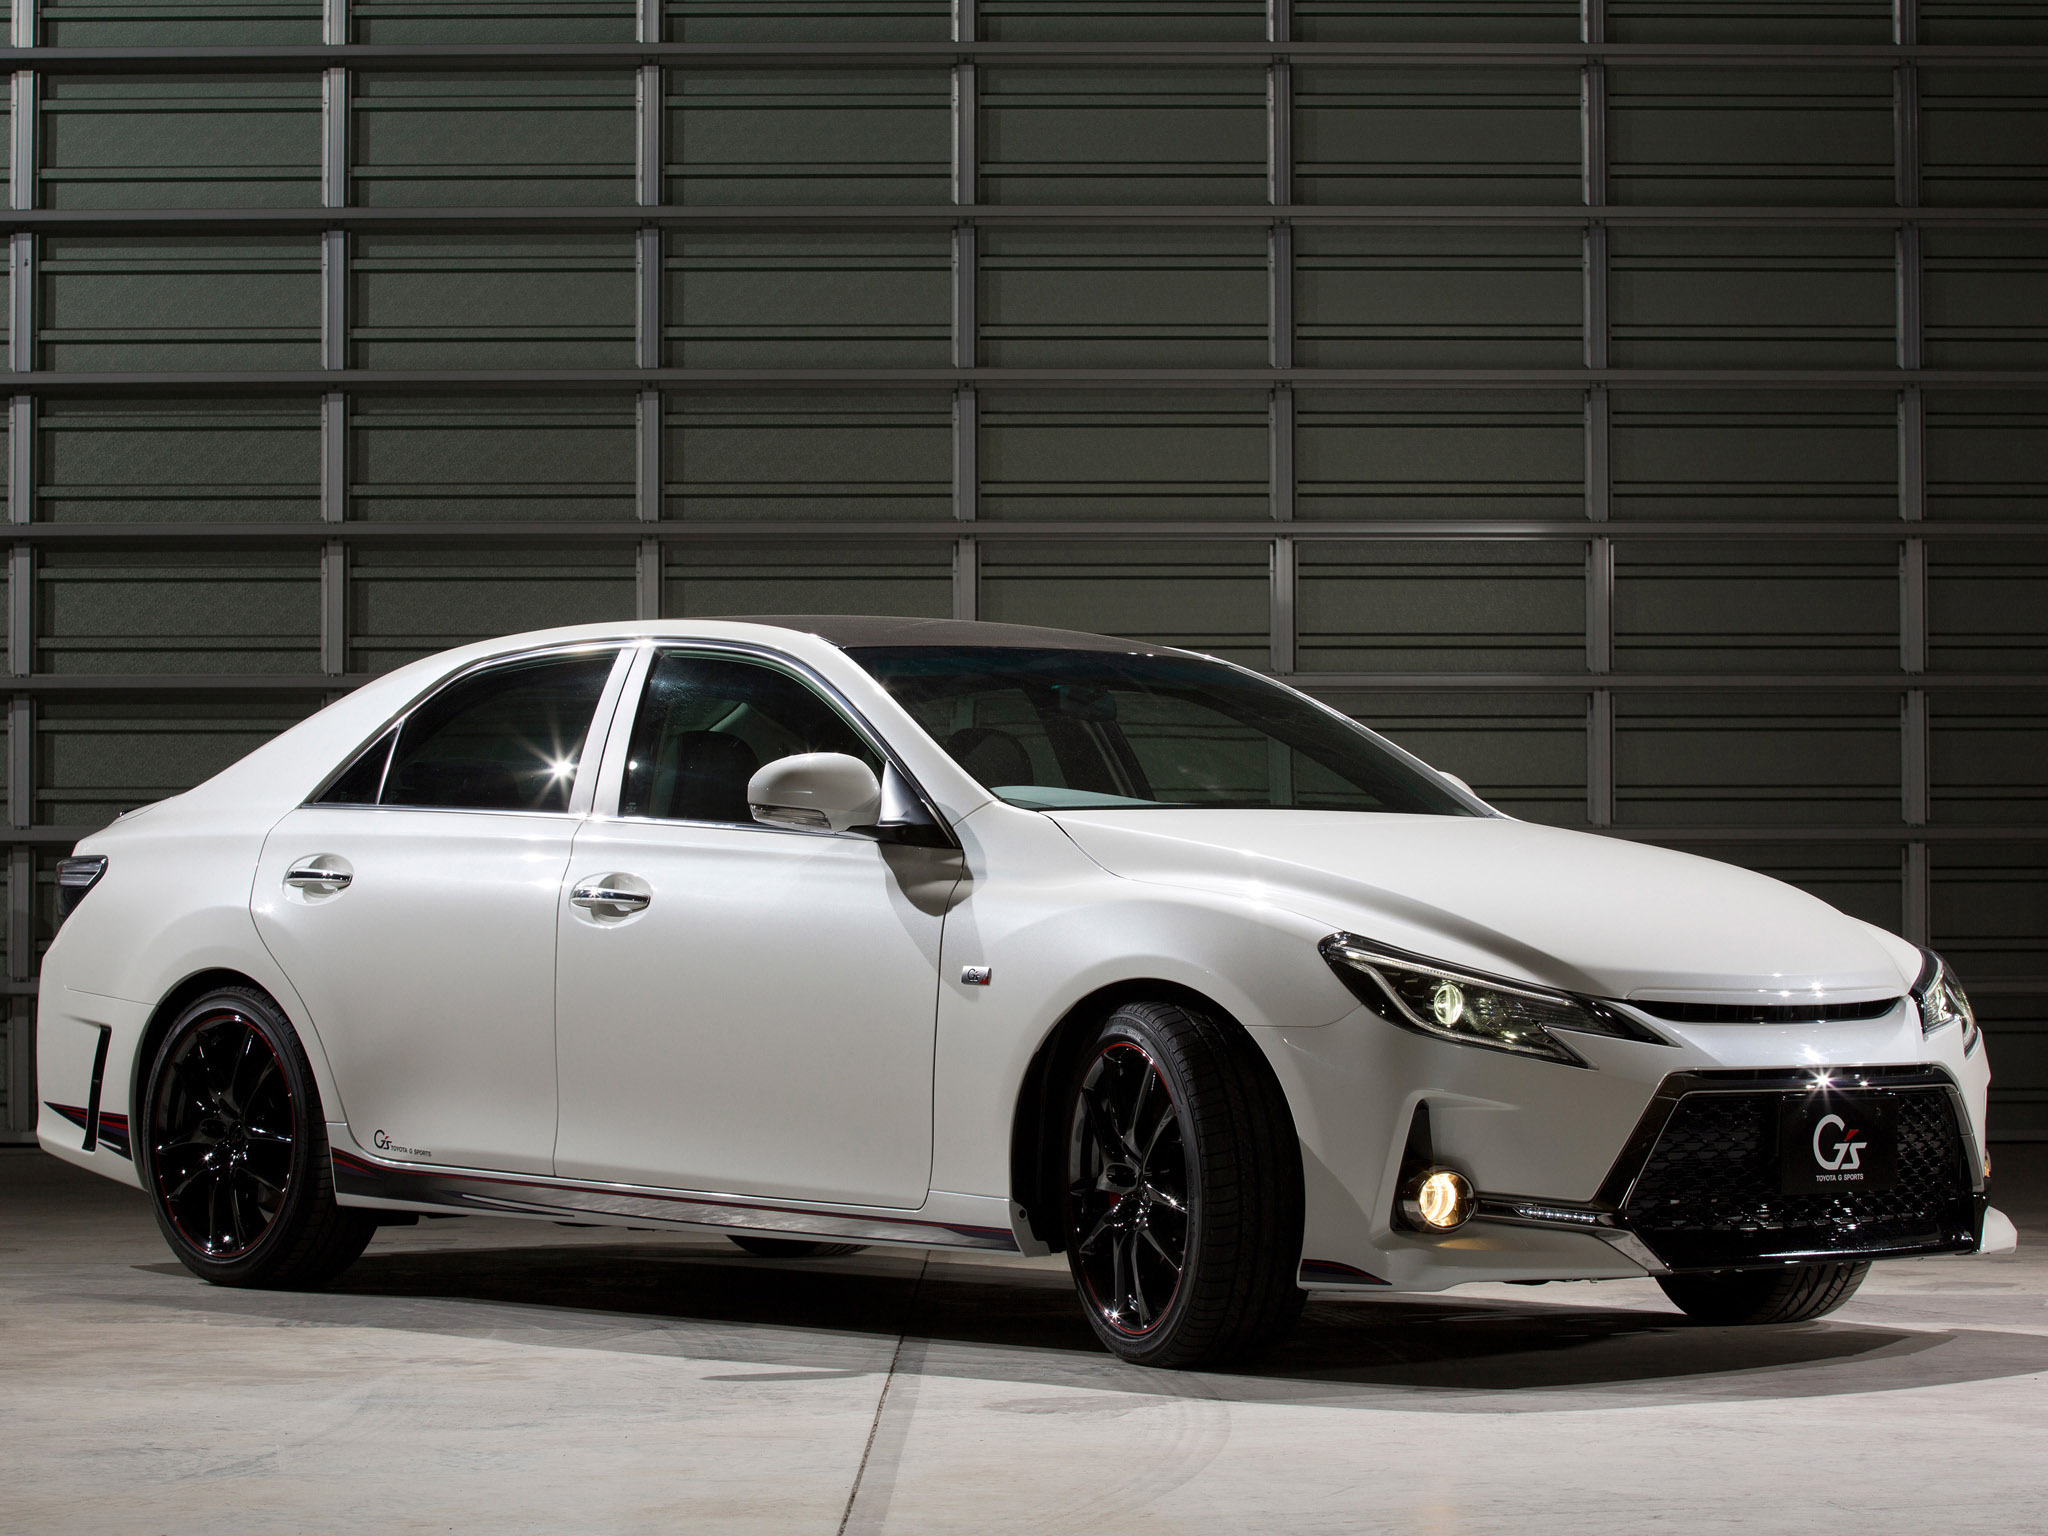 2013 Toyota Mark X G-Sports Concept